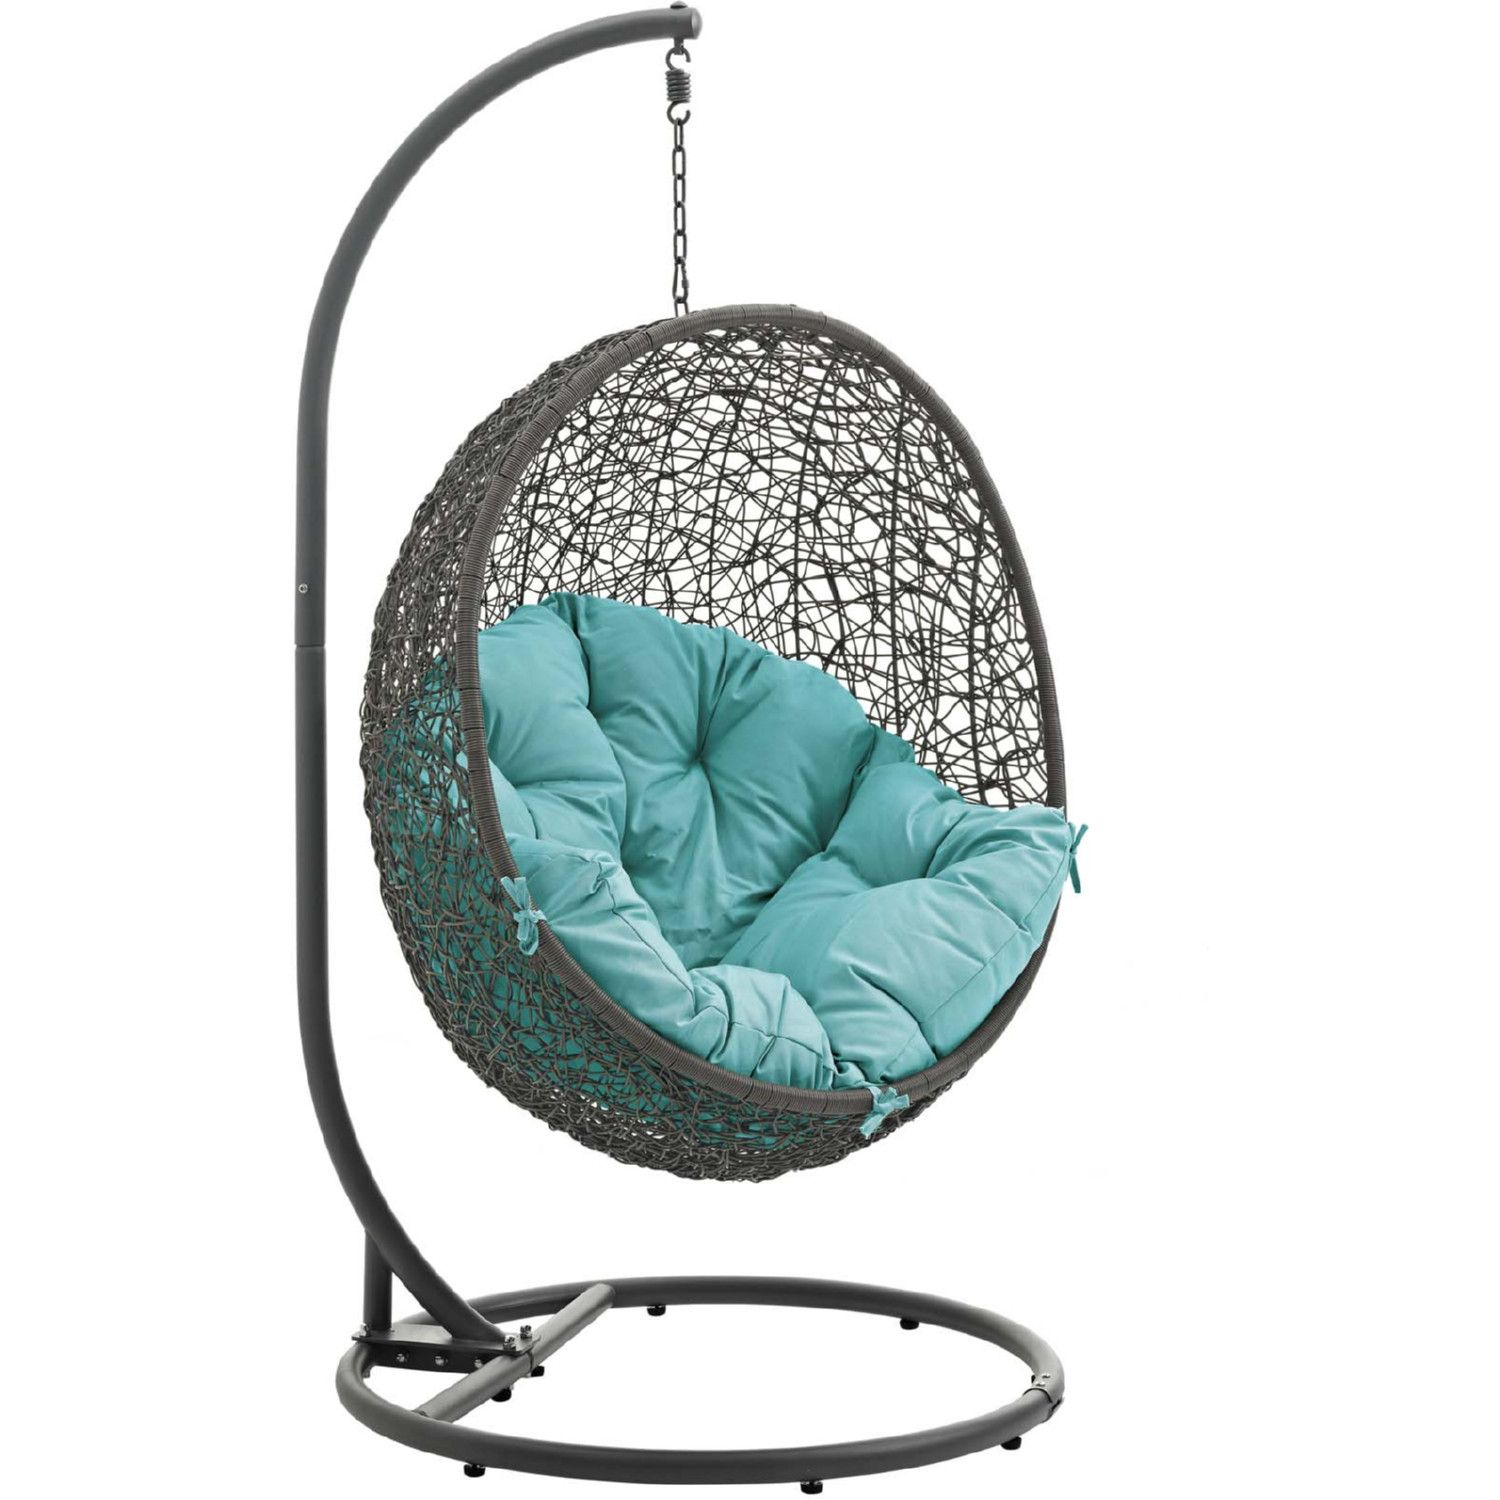 Modway Hide Outdoor Swing Chair Gray Steel Poly Rattan